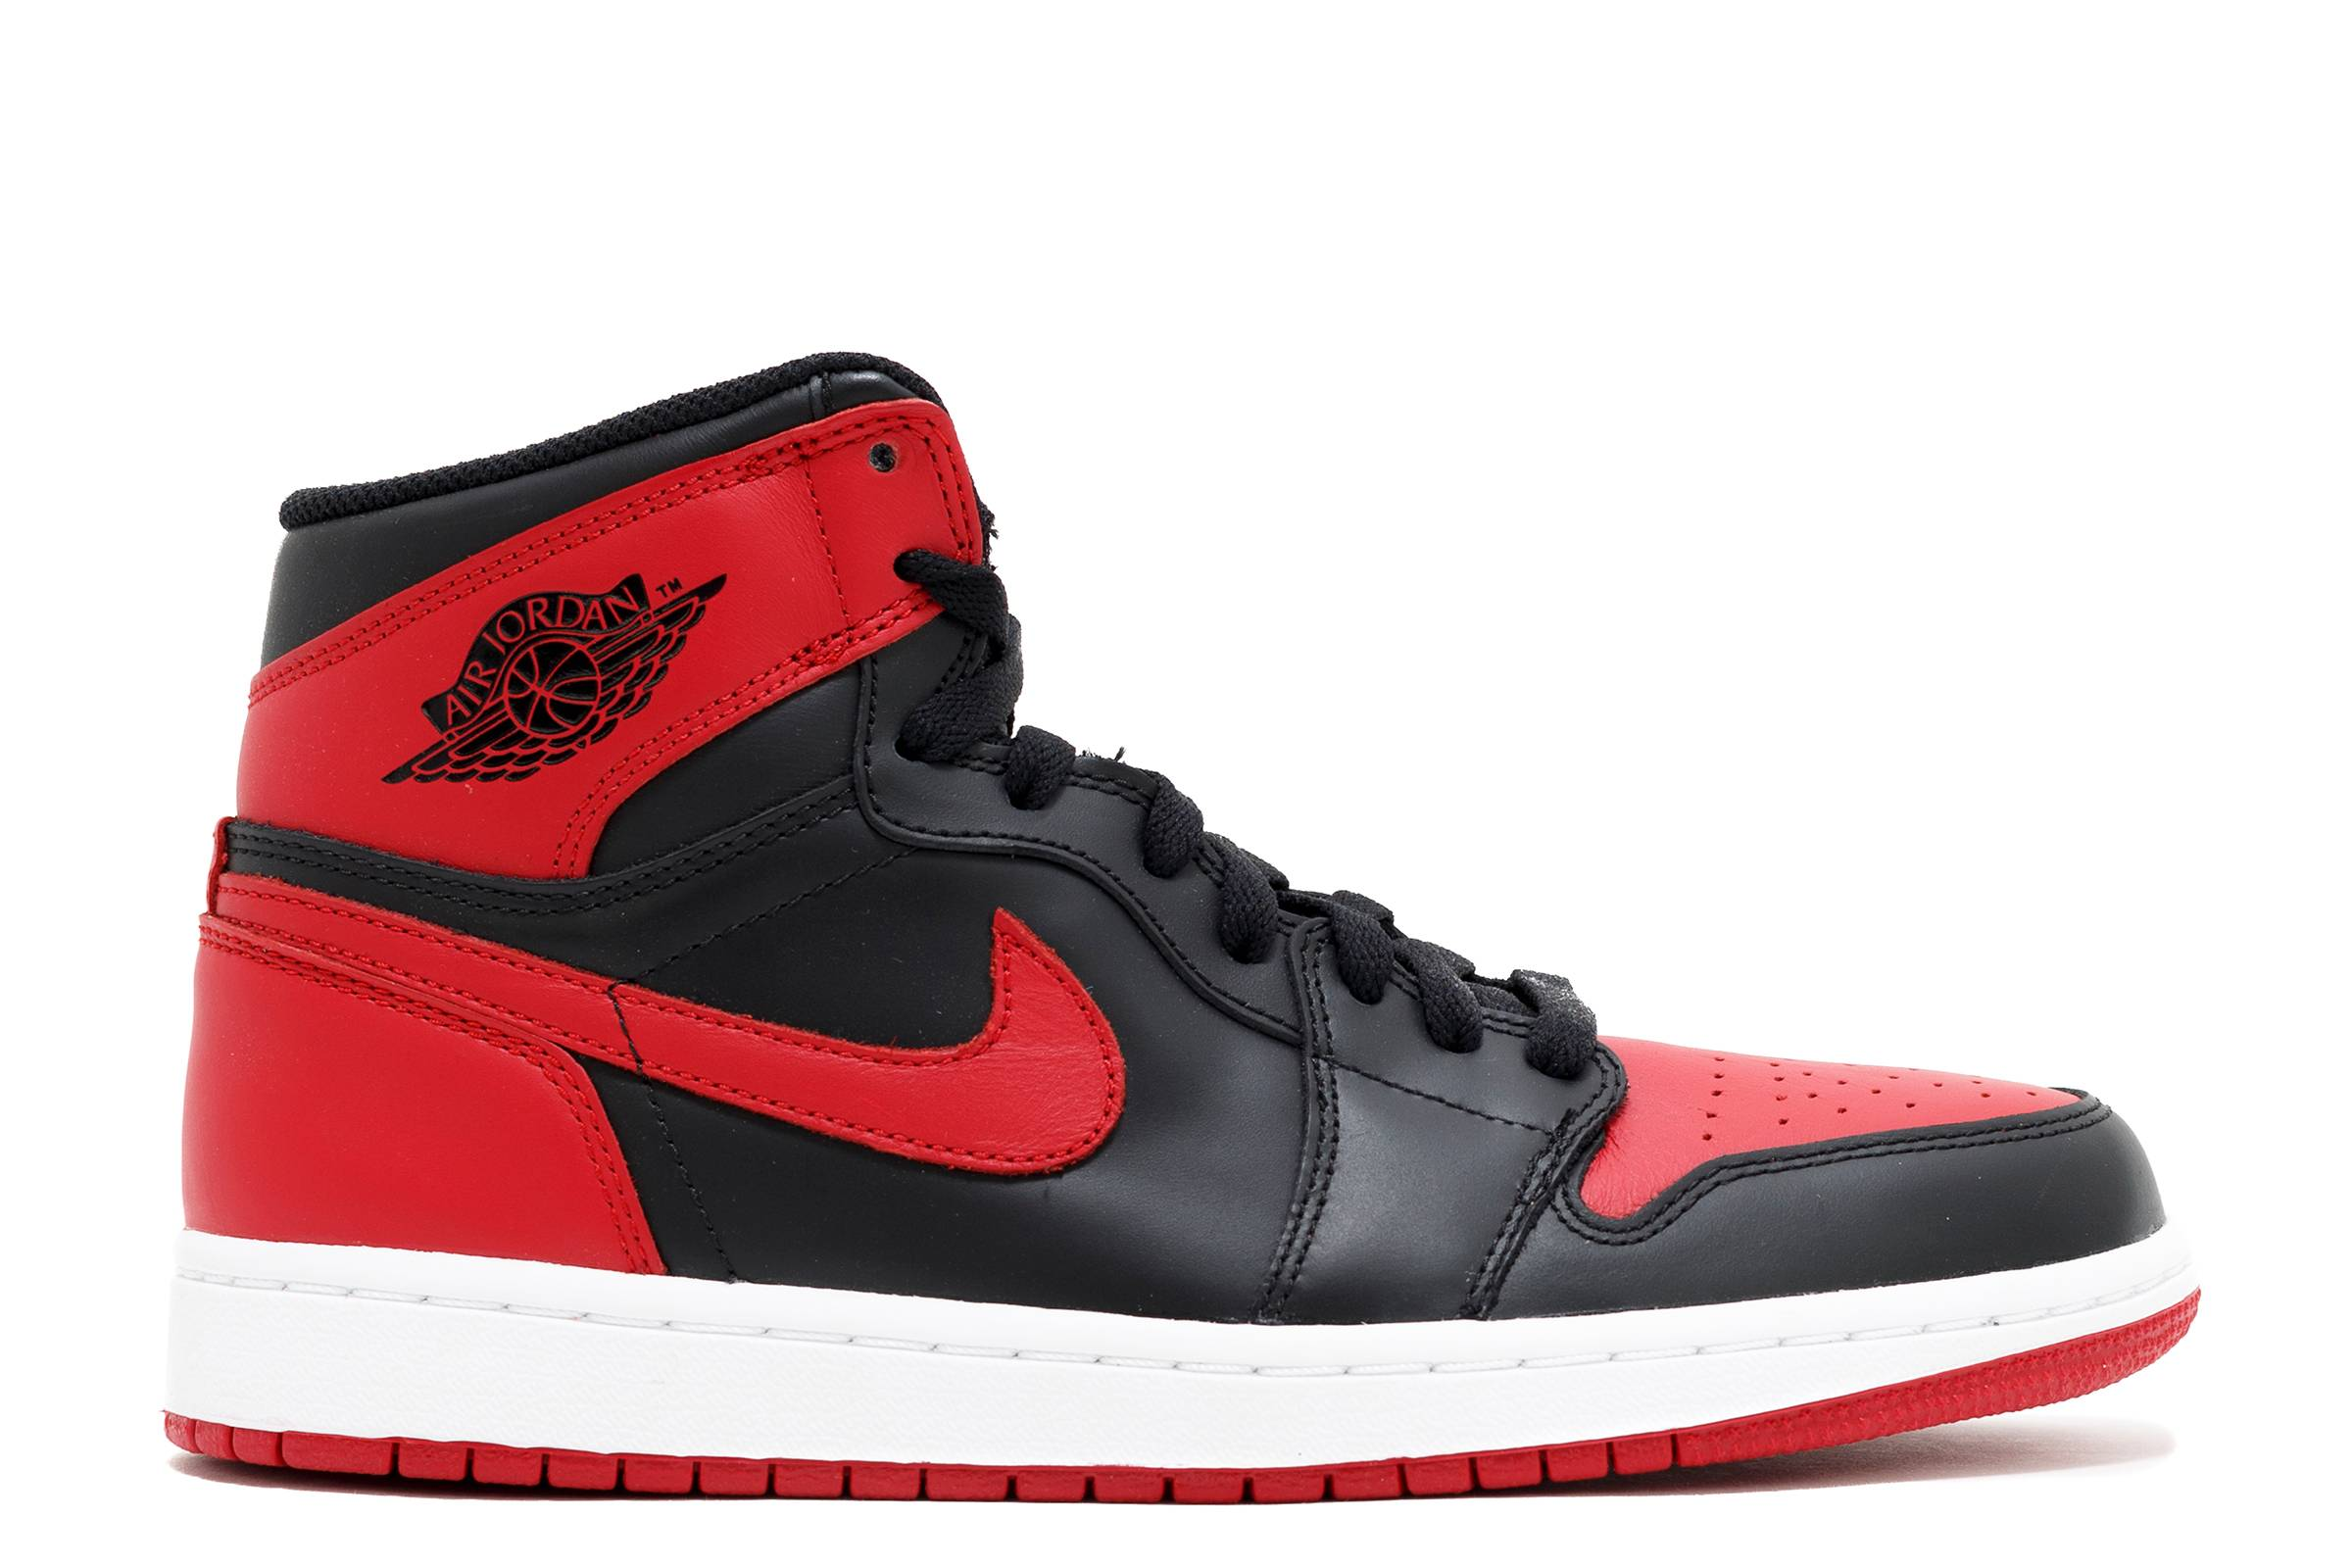 b3e0f687eb2d The One That Started It All  A History of the Jordan 1 - Jordan 1 ...